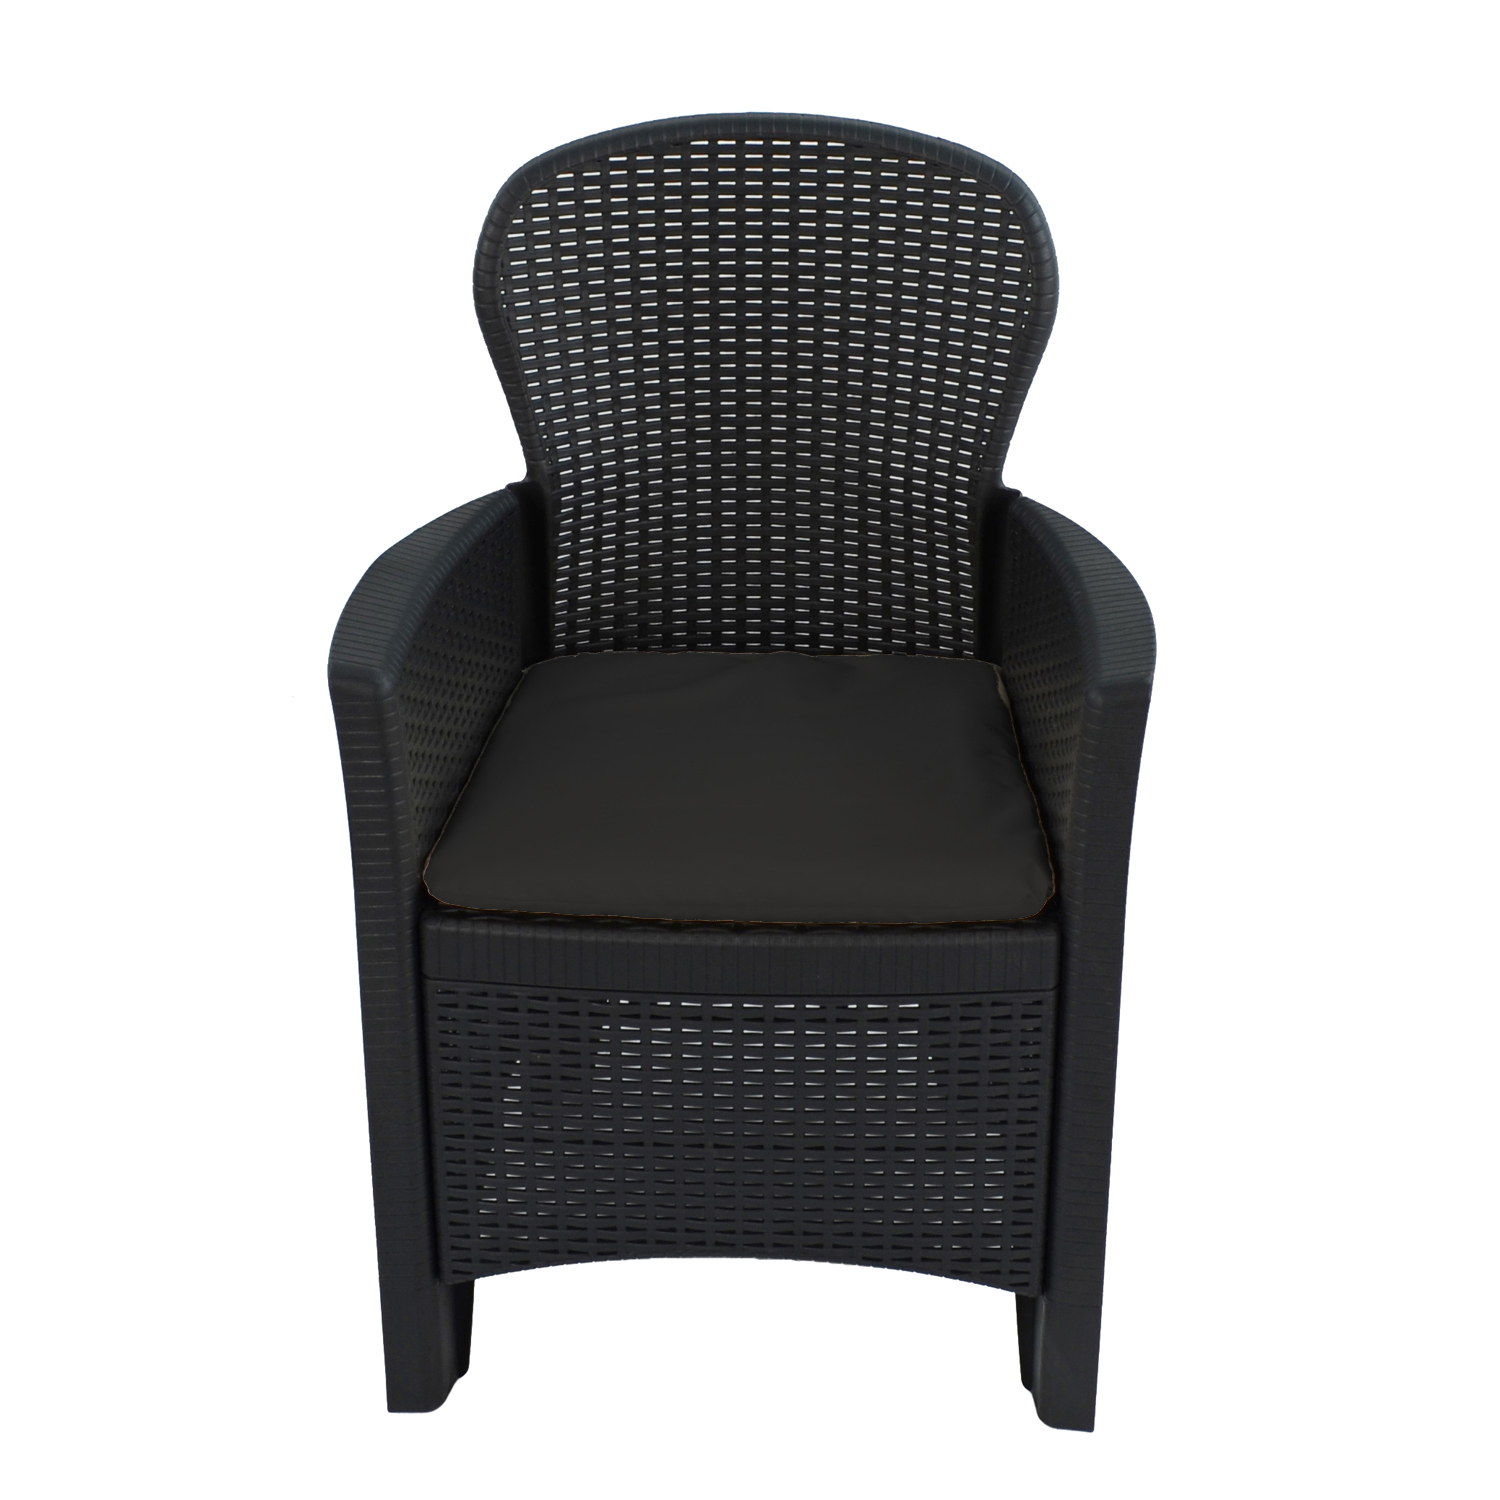 SICILY CHAIR ANTHRACITE FRONT